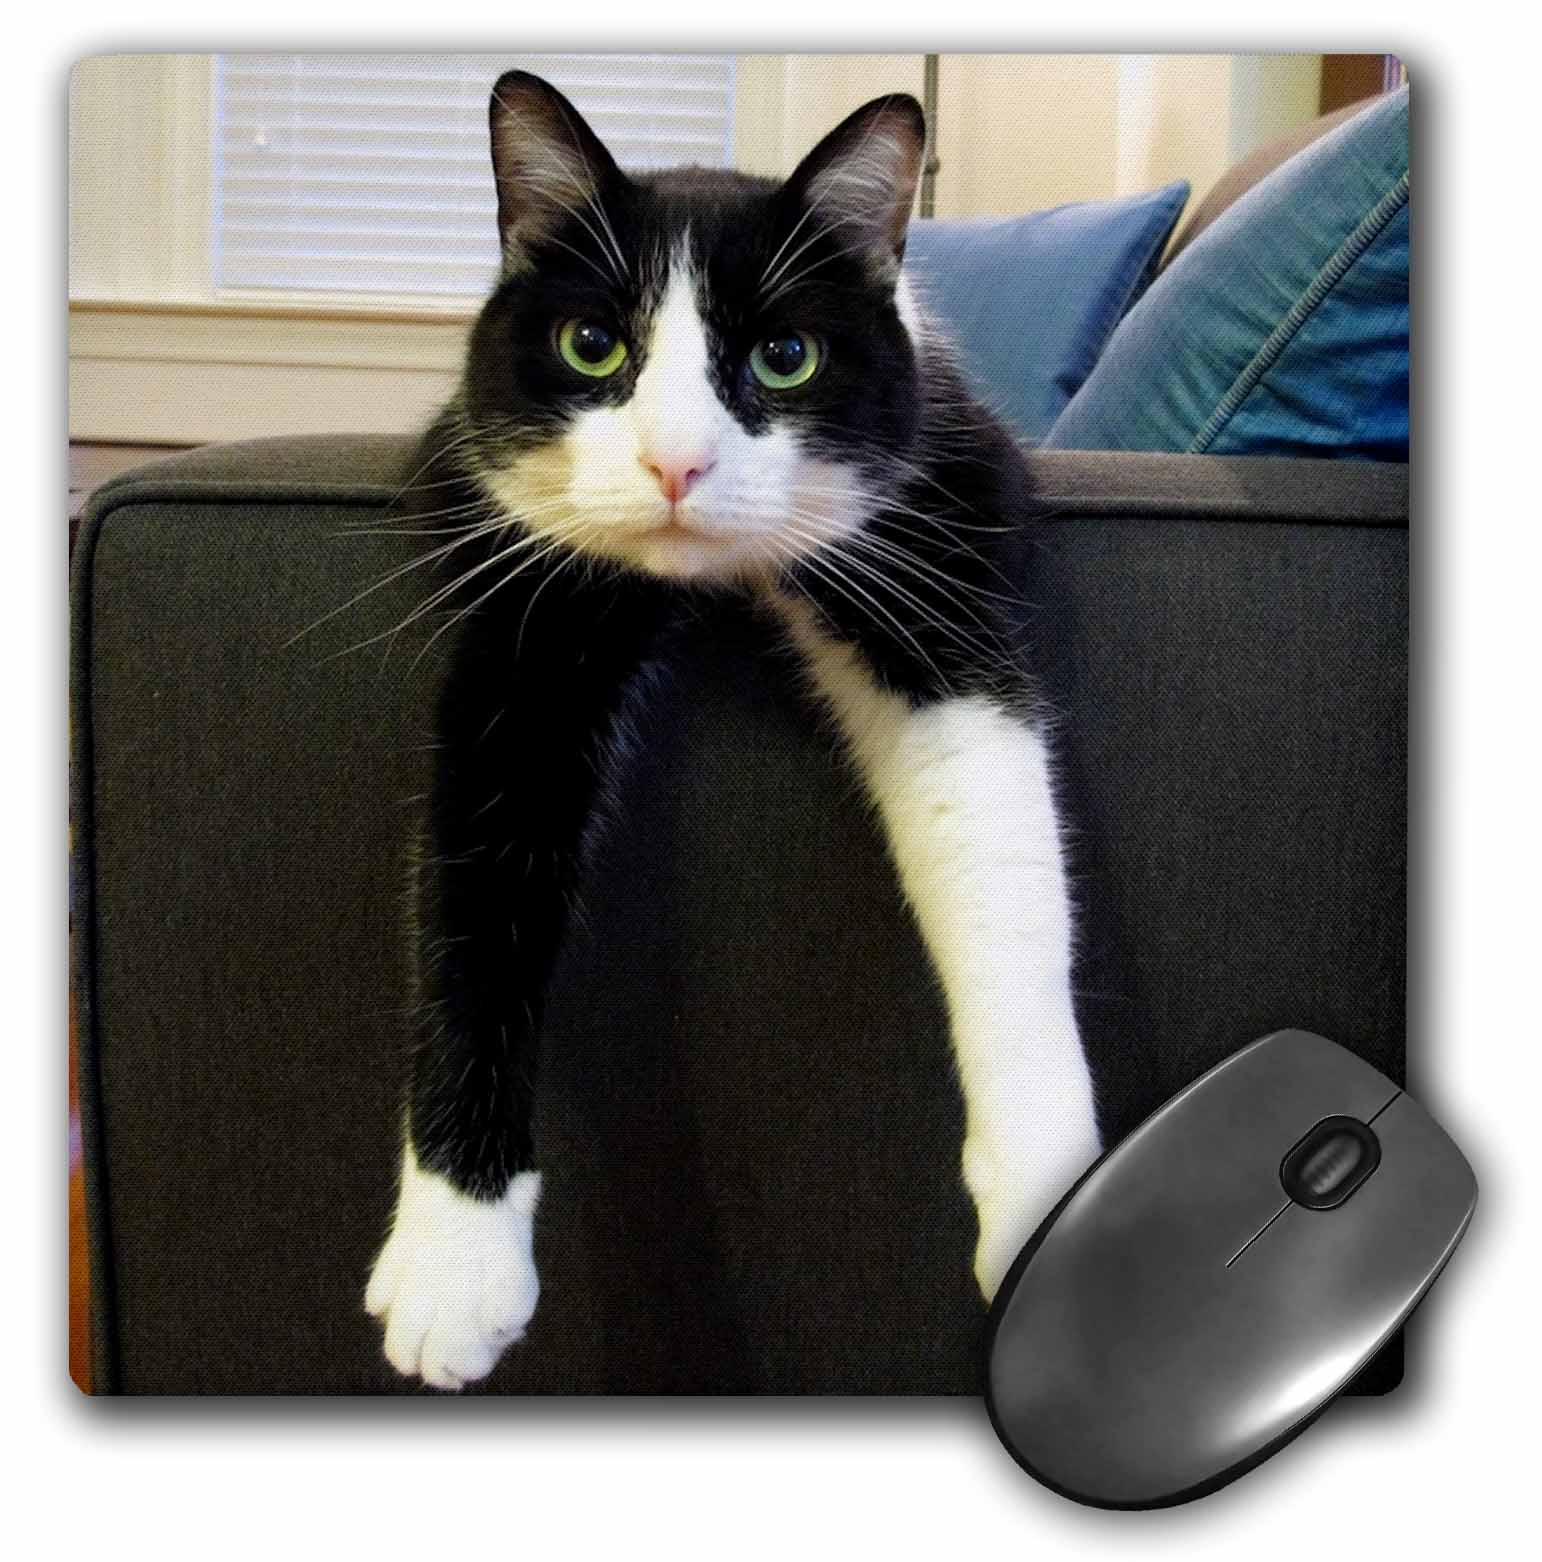 3dRose Black and White Cat with Nothing to Do, Mouse Pad, 8 by 8 inches by 3dRose